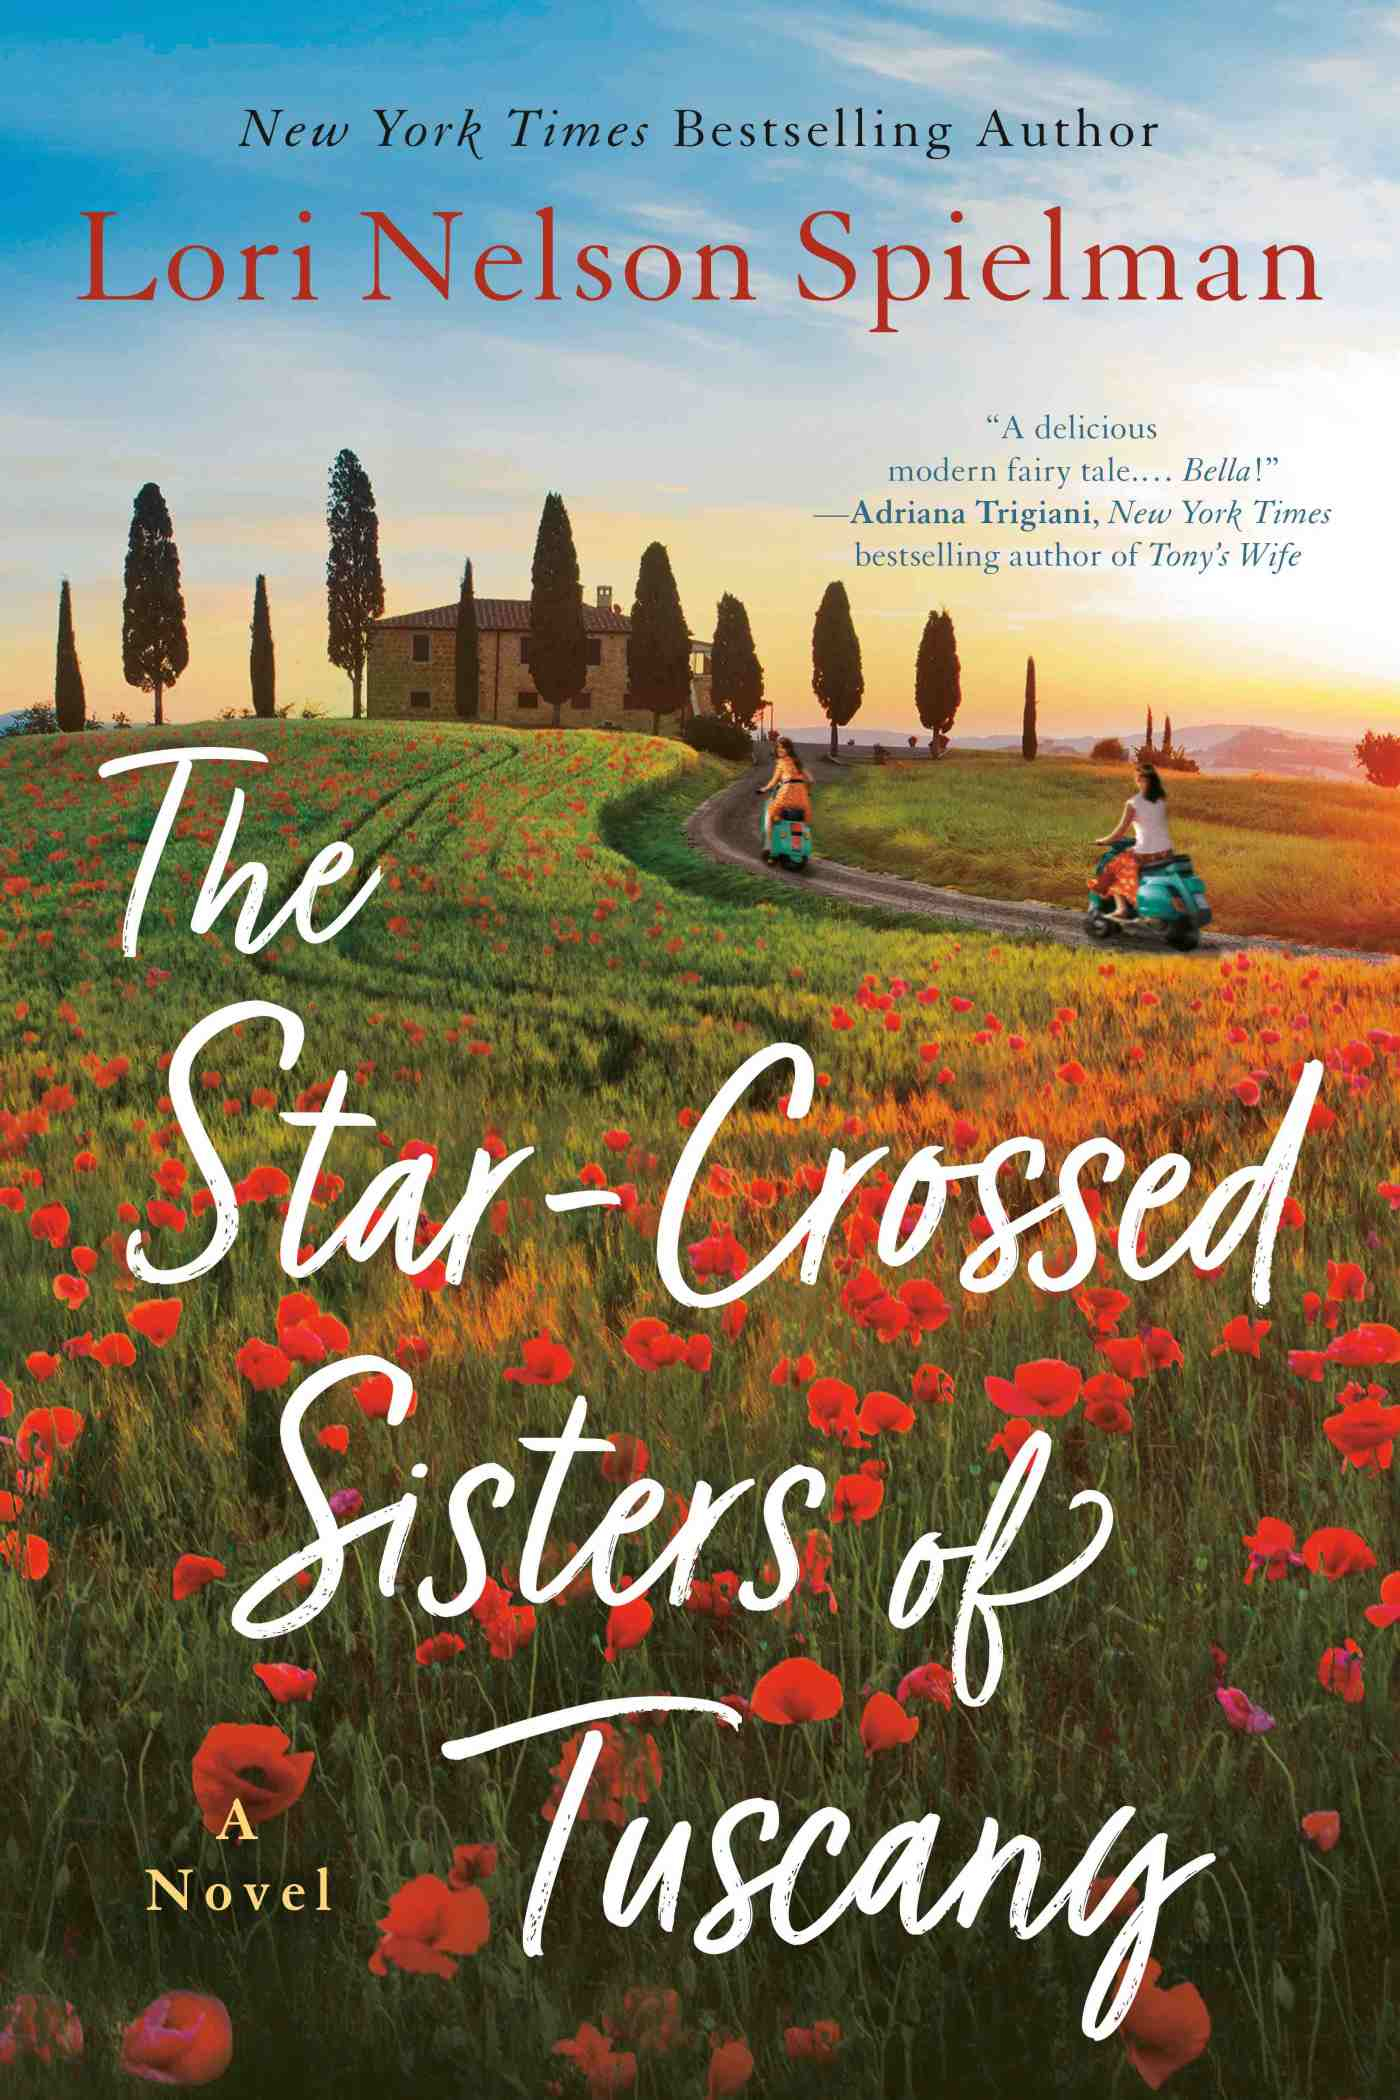 Lori Nelson Spielman - The Star-Crossed Sisters of Tuscany